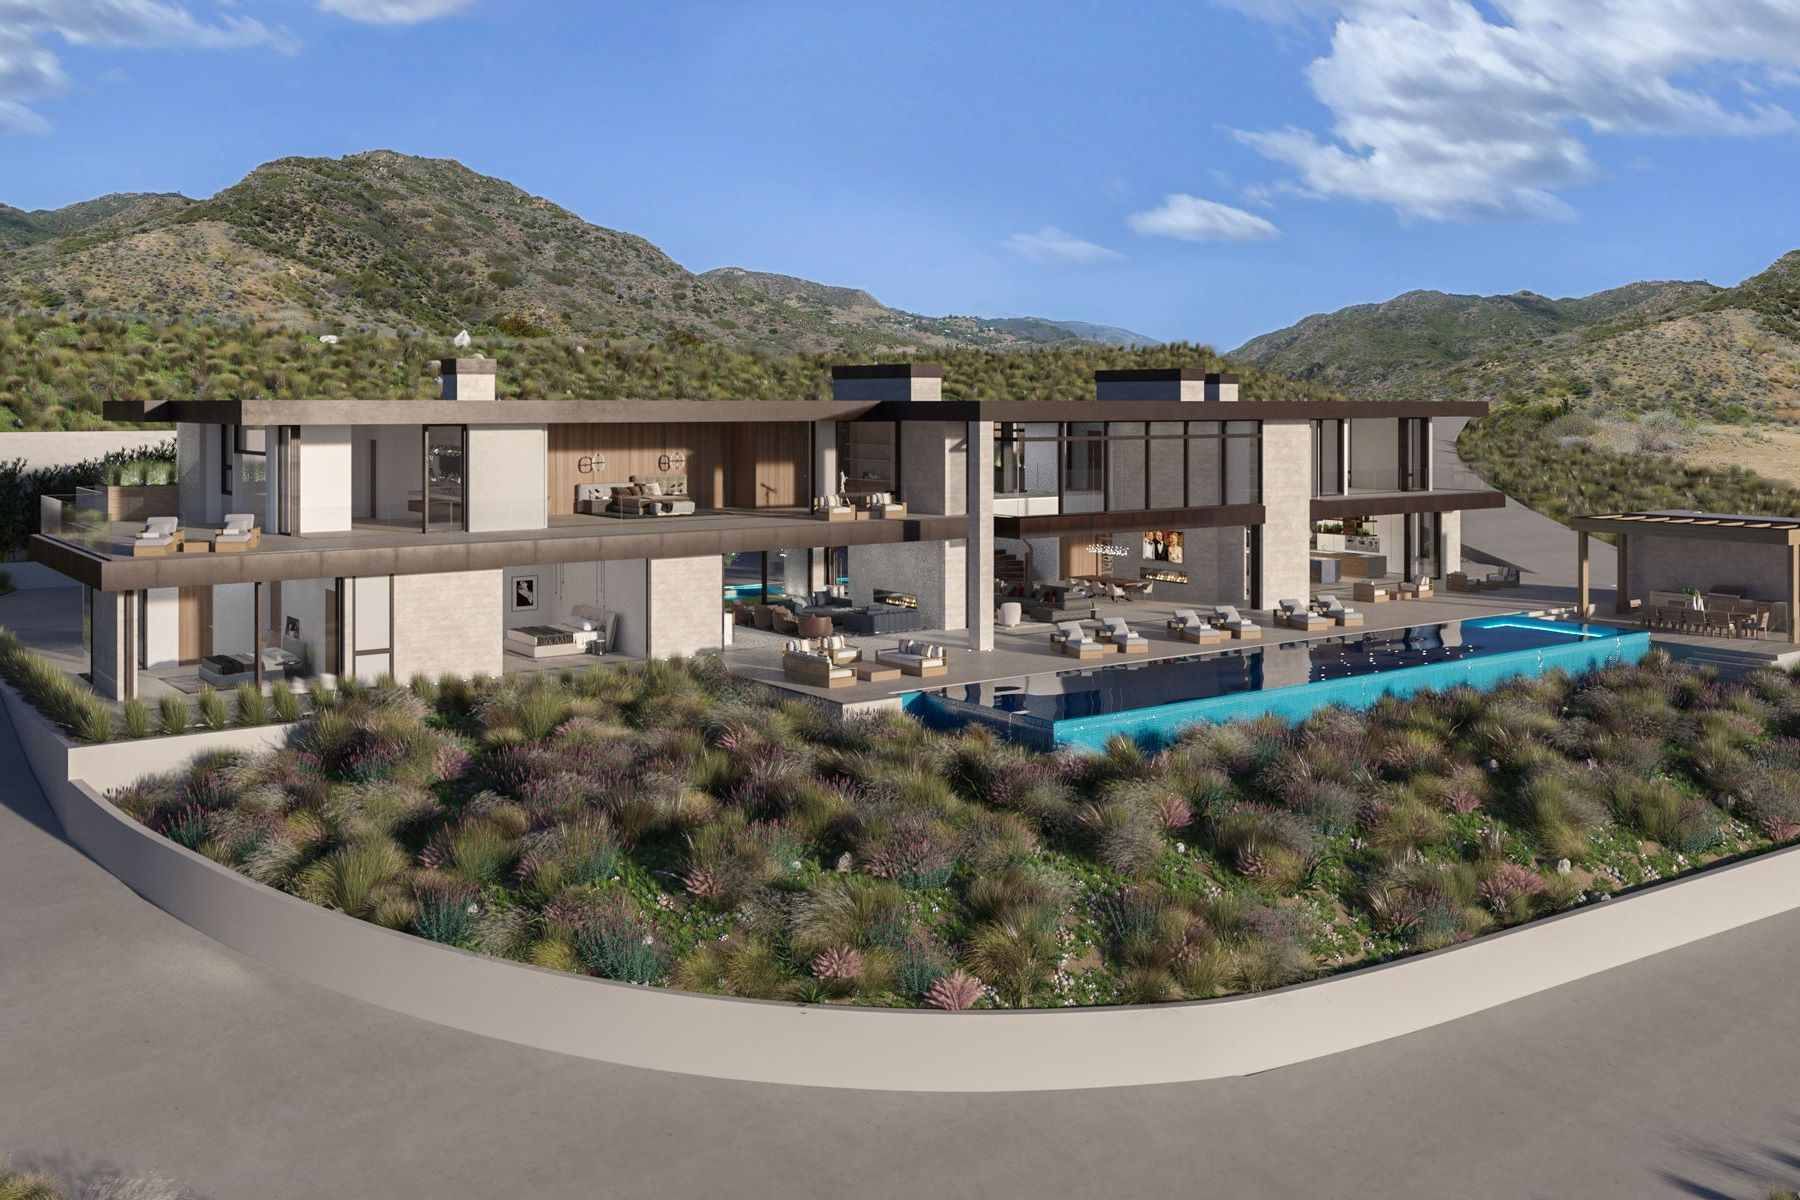 Additional photo for property listing at Ultra High End Development Opportunity 3093 Sweetwater Mesa Rd. Malibu, California 90265 Estados Unidos